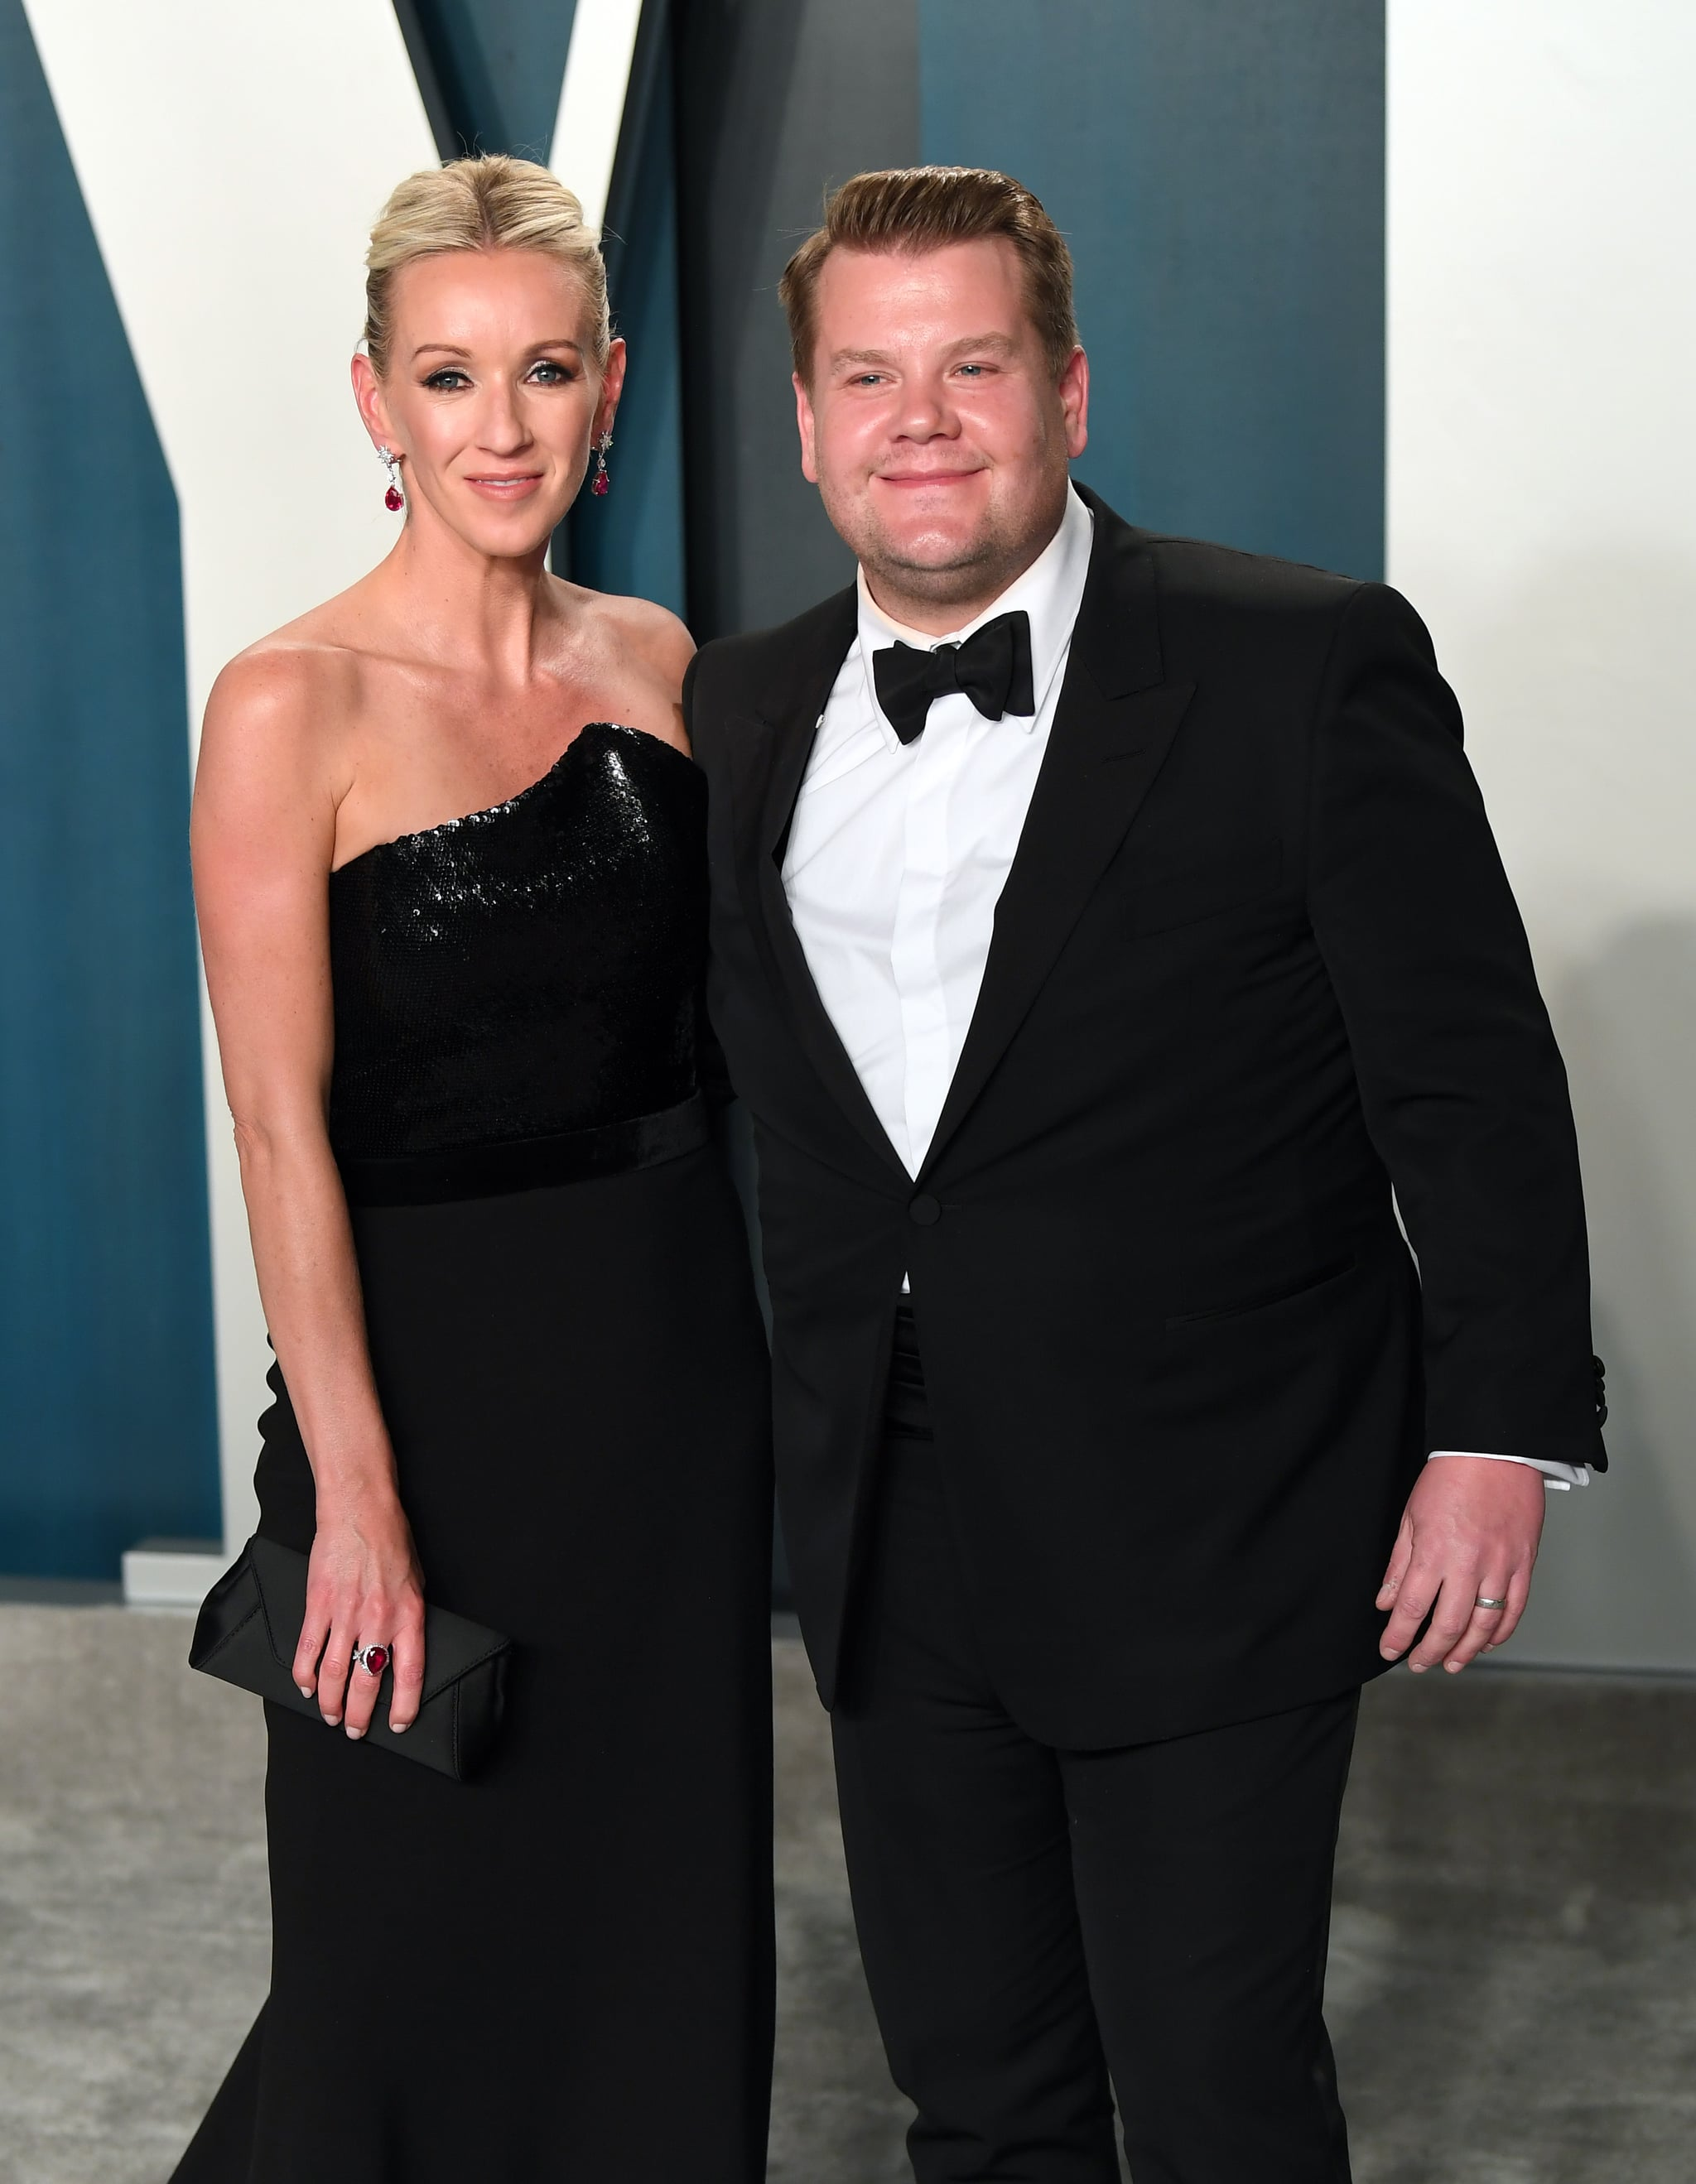 BEVERLY HILLS, CALIFORNIA - FEBRUARY 09: Julia Carey and James Corden attend the 2020 Vanity Fair Oscar Party hosted by Radhika Jones at Wallis Annenberg Centre for the Performing Arts on February 09, 2020 in Beverly Hills, California. (Photo by Karwai Tang/Getty Images)